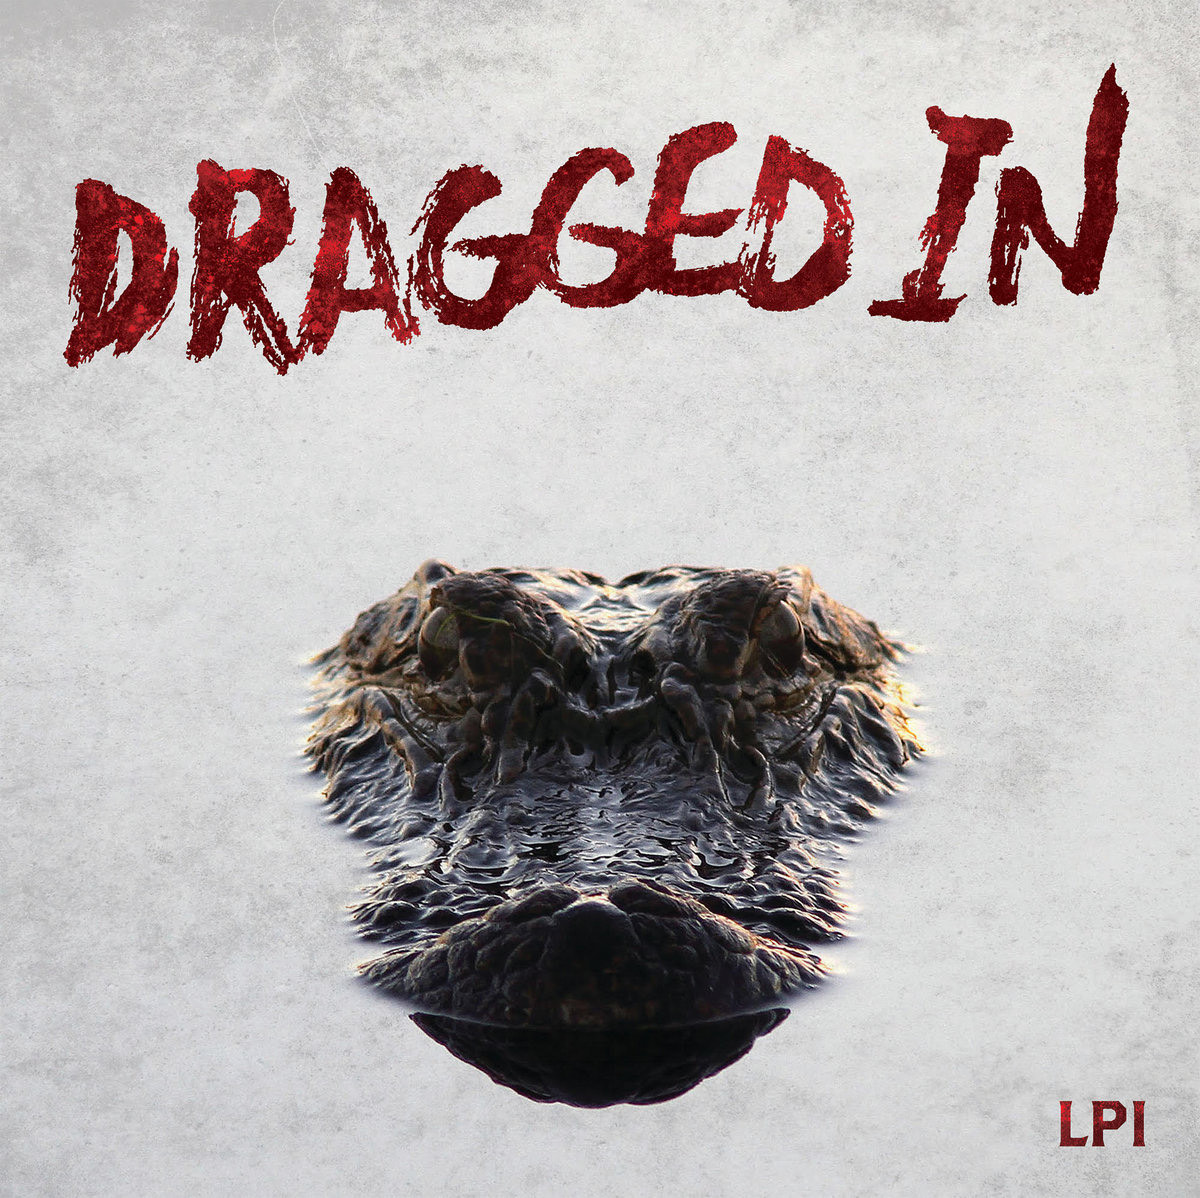 Dragged In - LP1